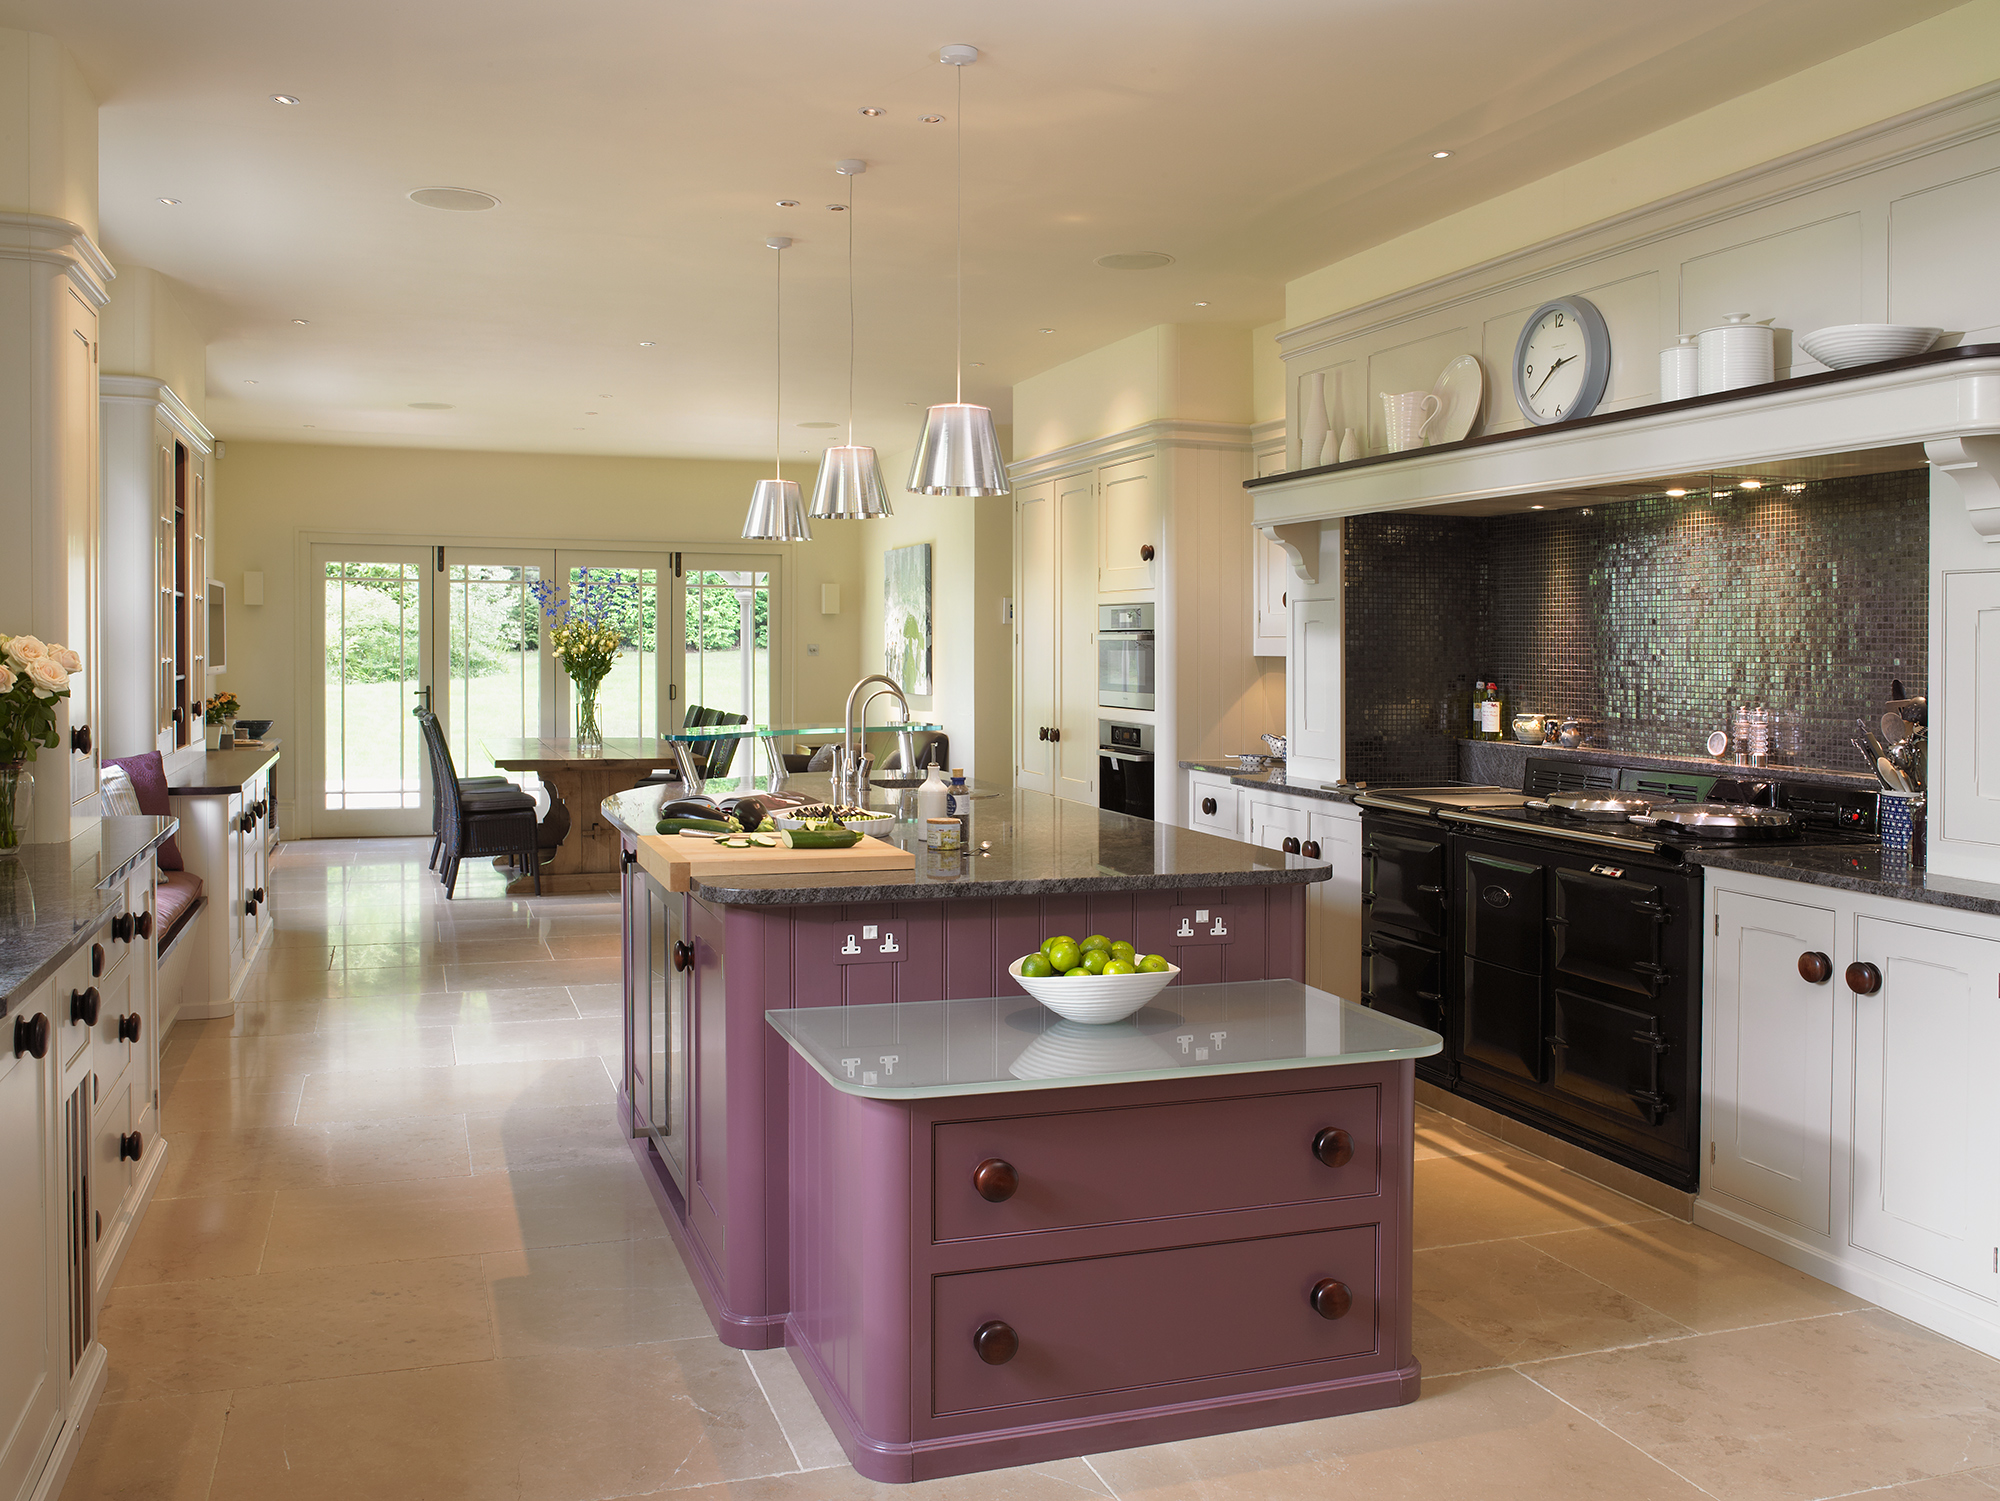 Luxury Bespoke Kitchens The Cook S Kitchen Mark Wilkinson